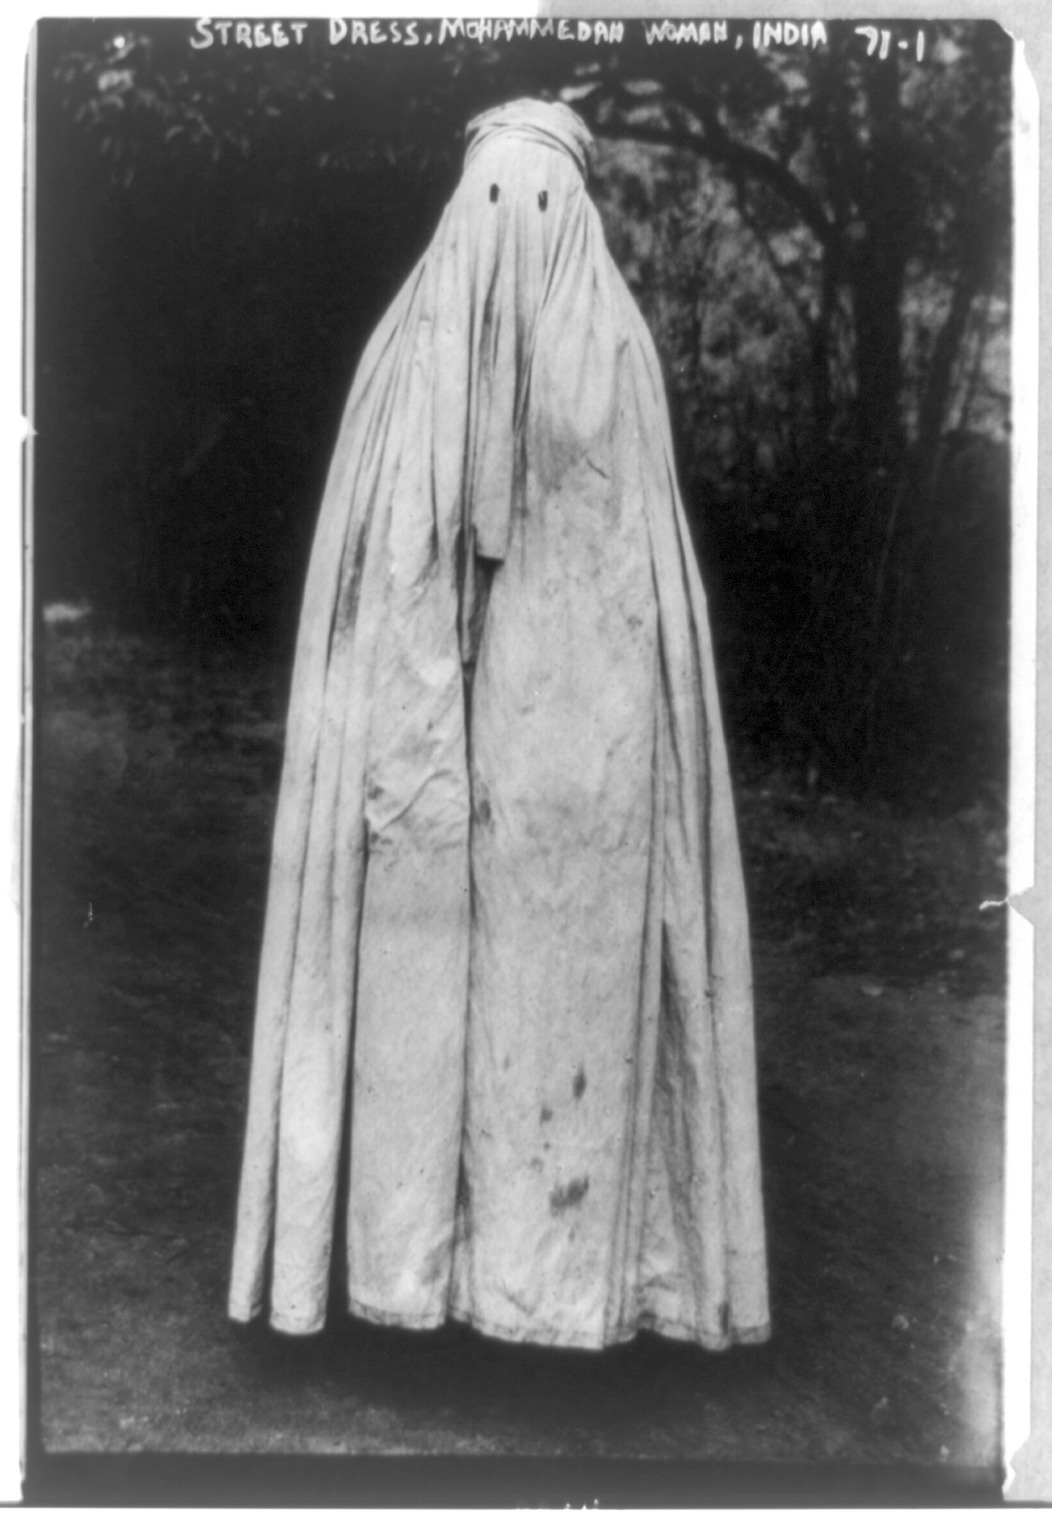 Photographic Portrait Of A Muslim Woman In Street Dress, India, Circa 1900-1915 (via androphilia)